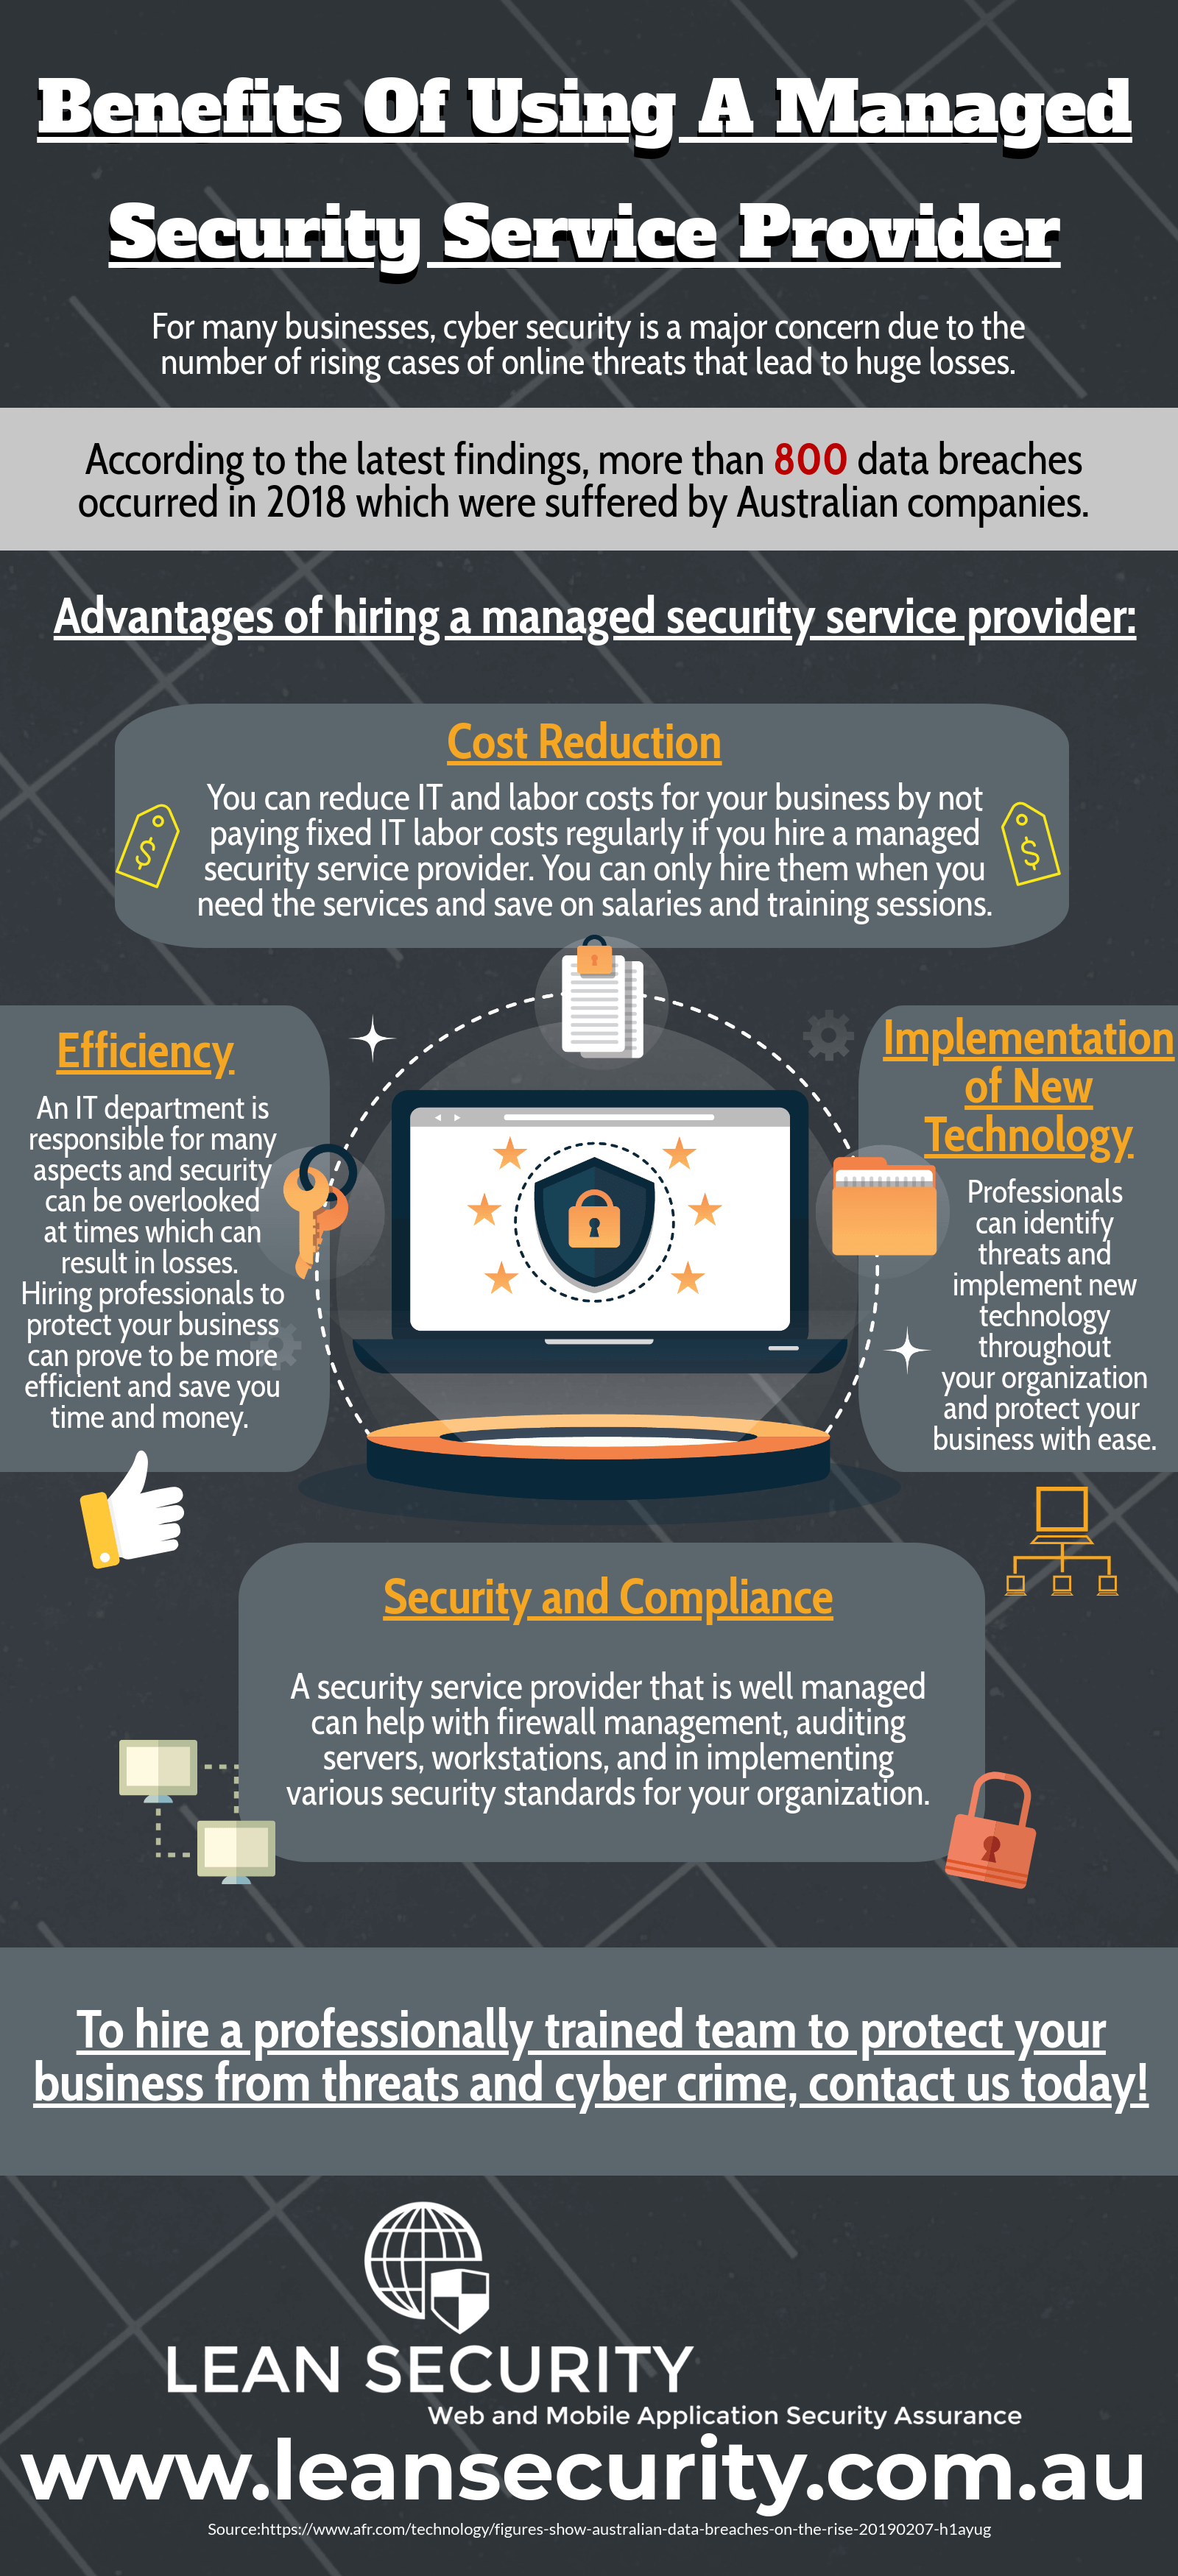 Benefits of Using A Managed Security Service Provider.png